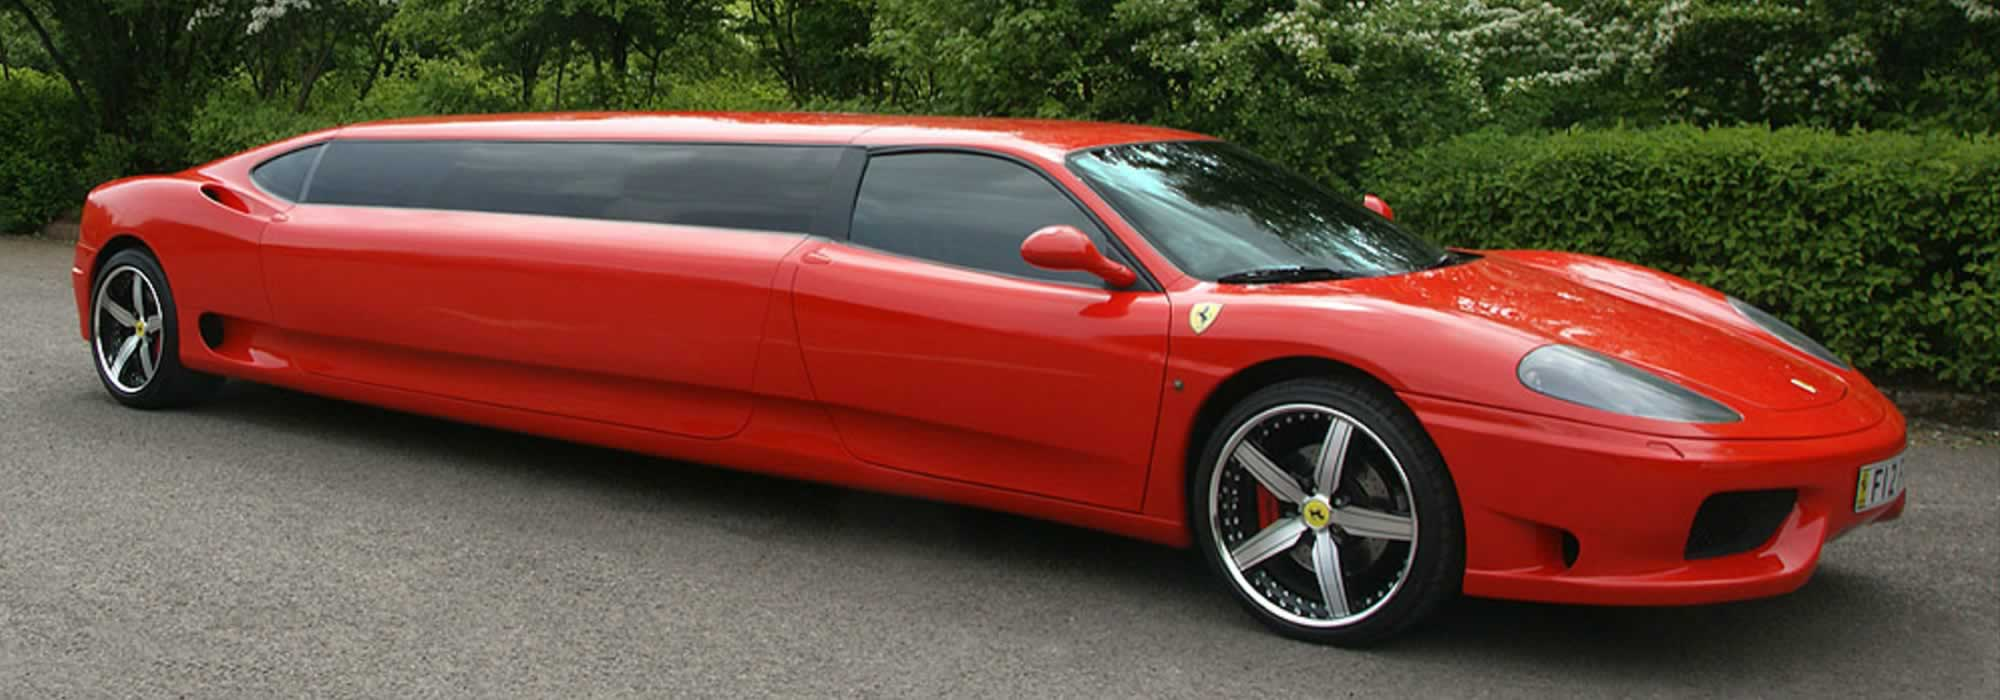 red ferrari limo hire